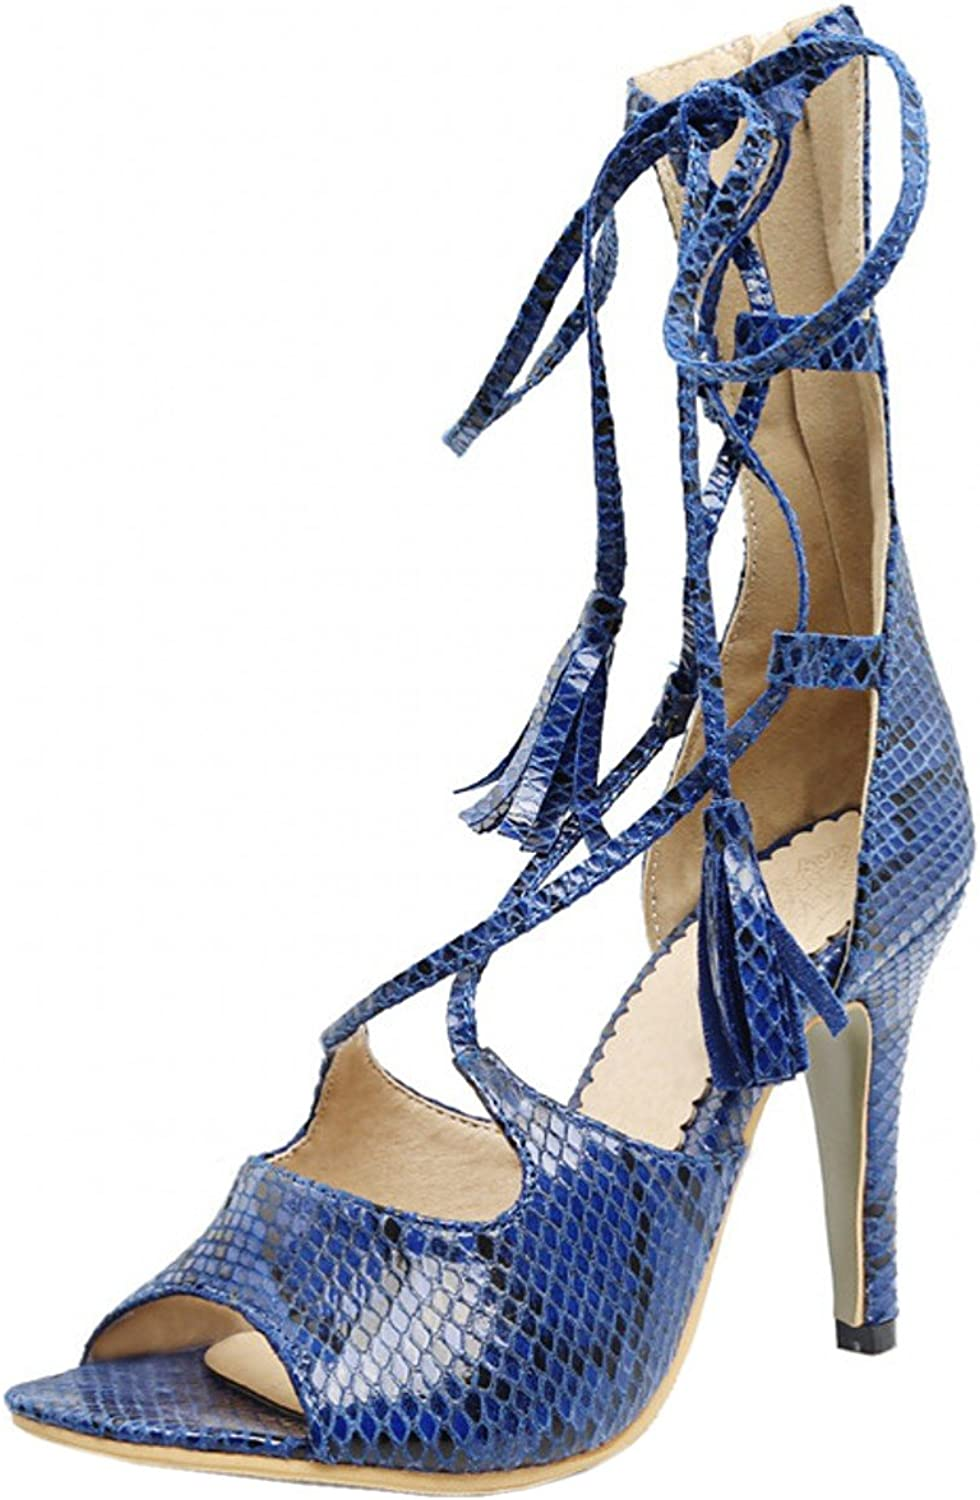 Rongzhi Womens Gladiator Heeled Sandals Pumps Stilettos Strappy High Heel shoes Open Toe Snakeskin Print